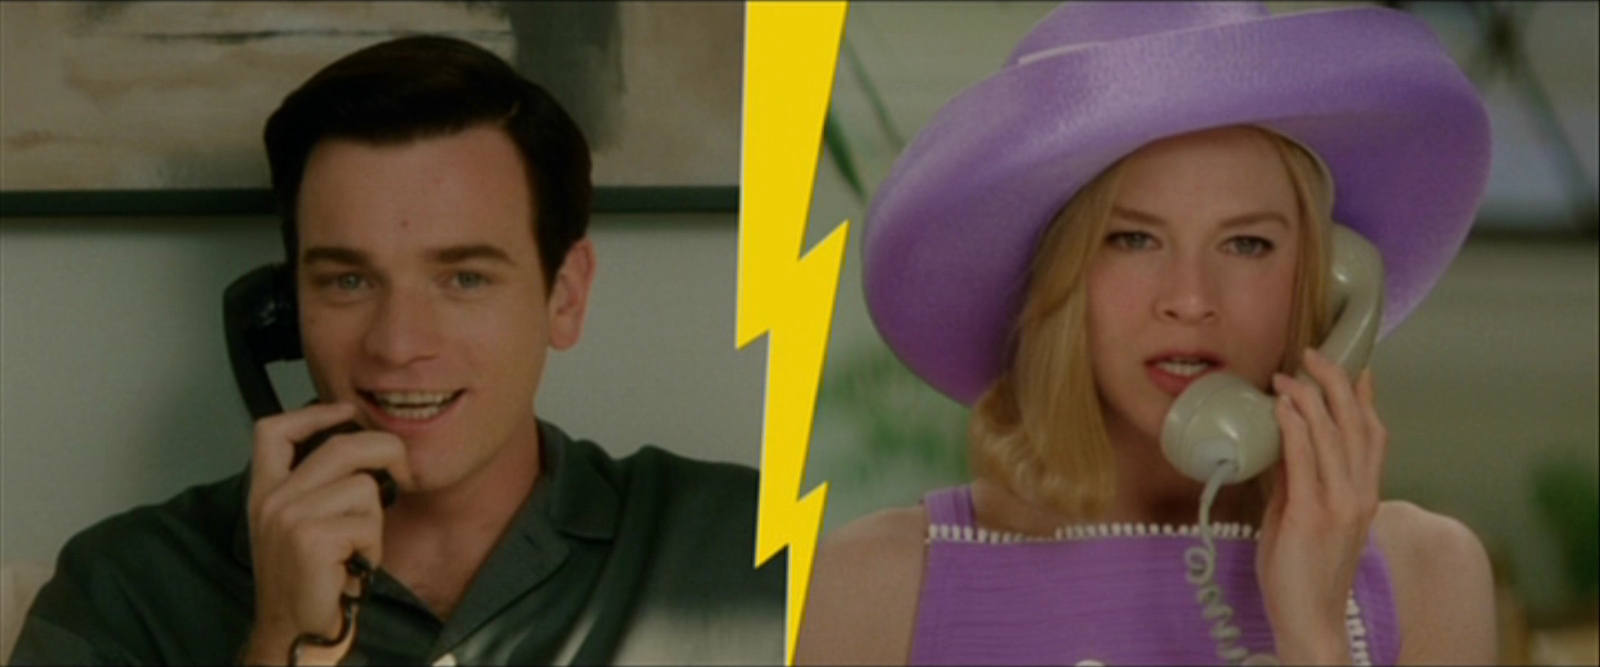 A man and a woman both shown on the phone while in split screen. The man wears a collared shirt and smiles, while the woman wears a lavender hat and top, looking less enthused. A yellow lightning both graphic separates them.